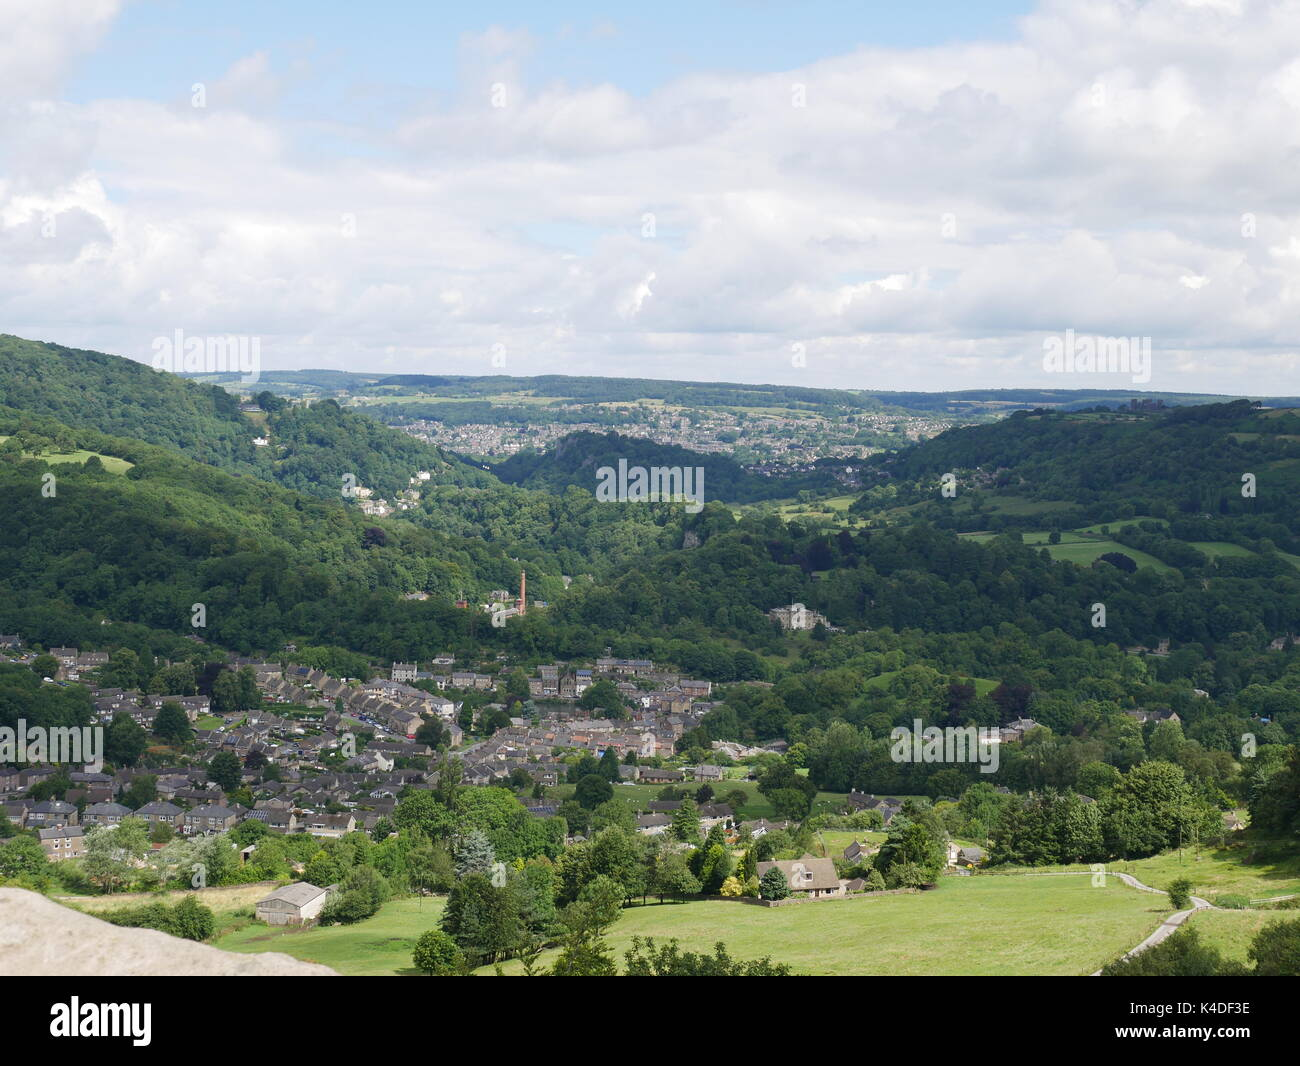 View of Cromford and the Derwent Valley from Black Rocks, a gritstone outcrop near to Wirksworth, Derbyshire (Peak District National Park) - Stock Image